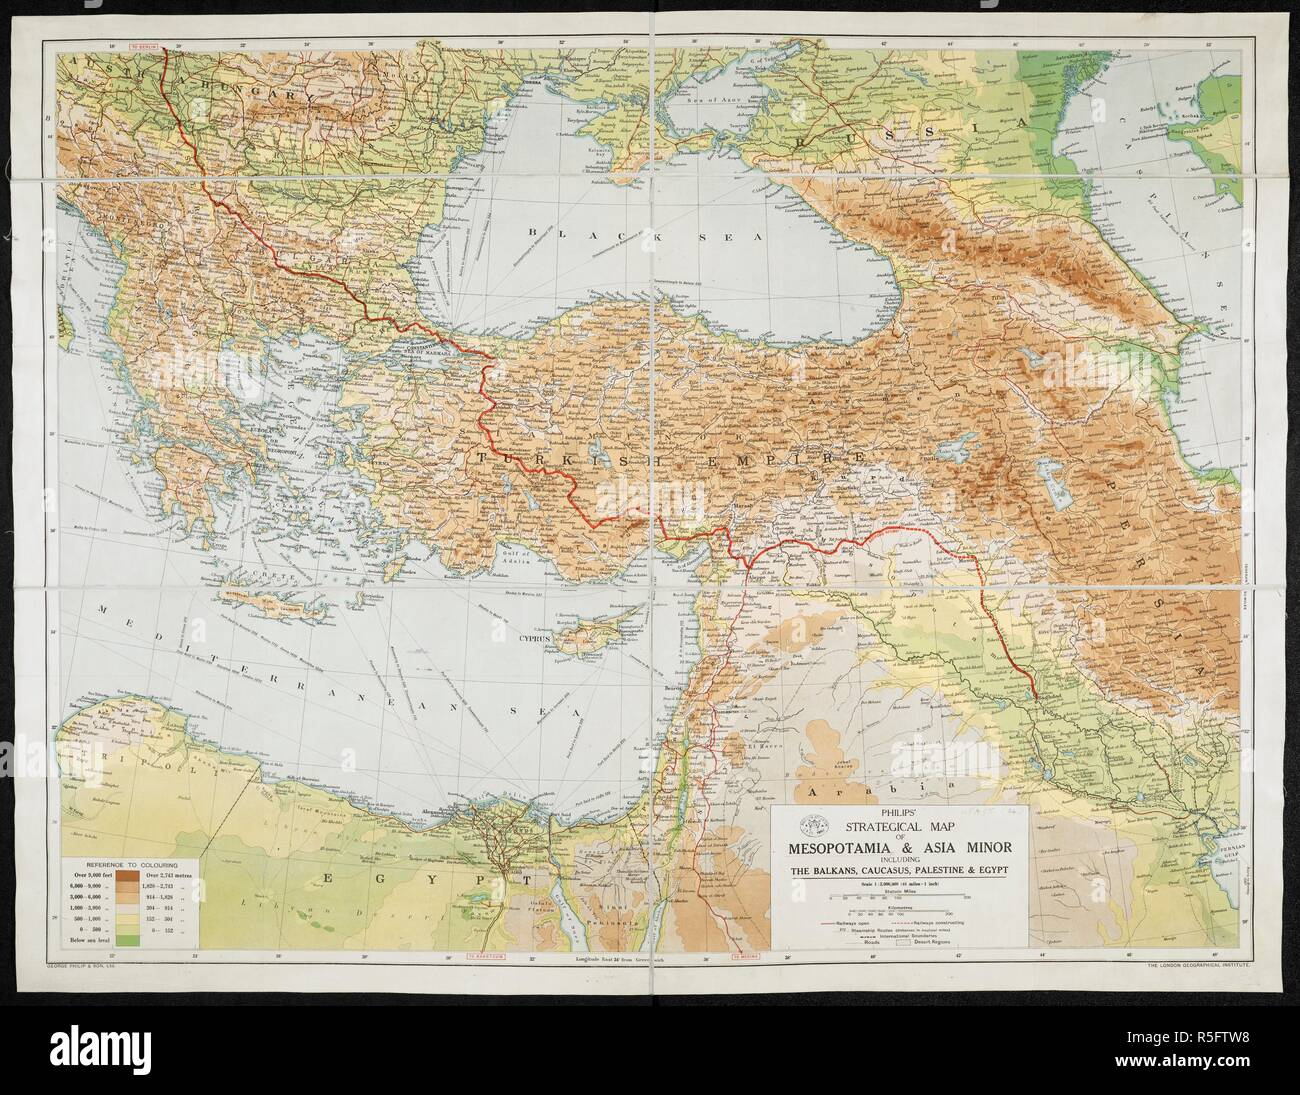 Map Of Asia Minor.A Strategical Map Of Mesopotamia And Asia Minor Philips